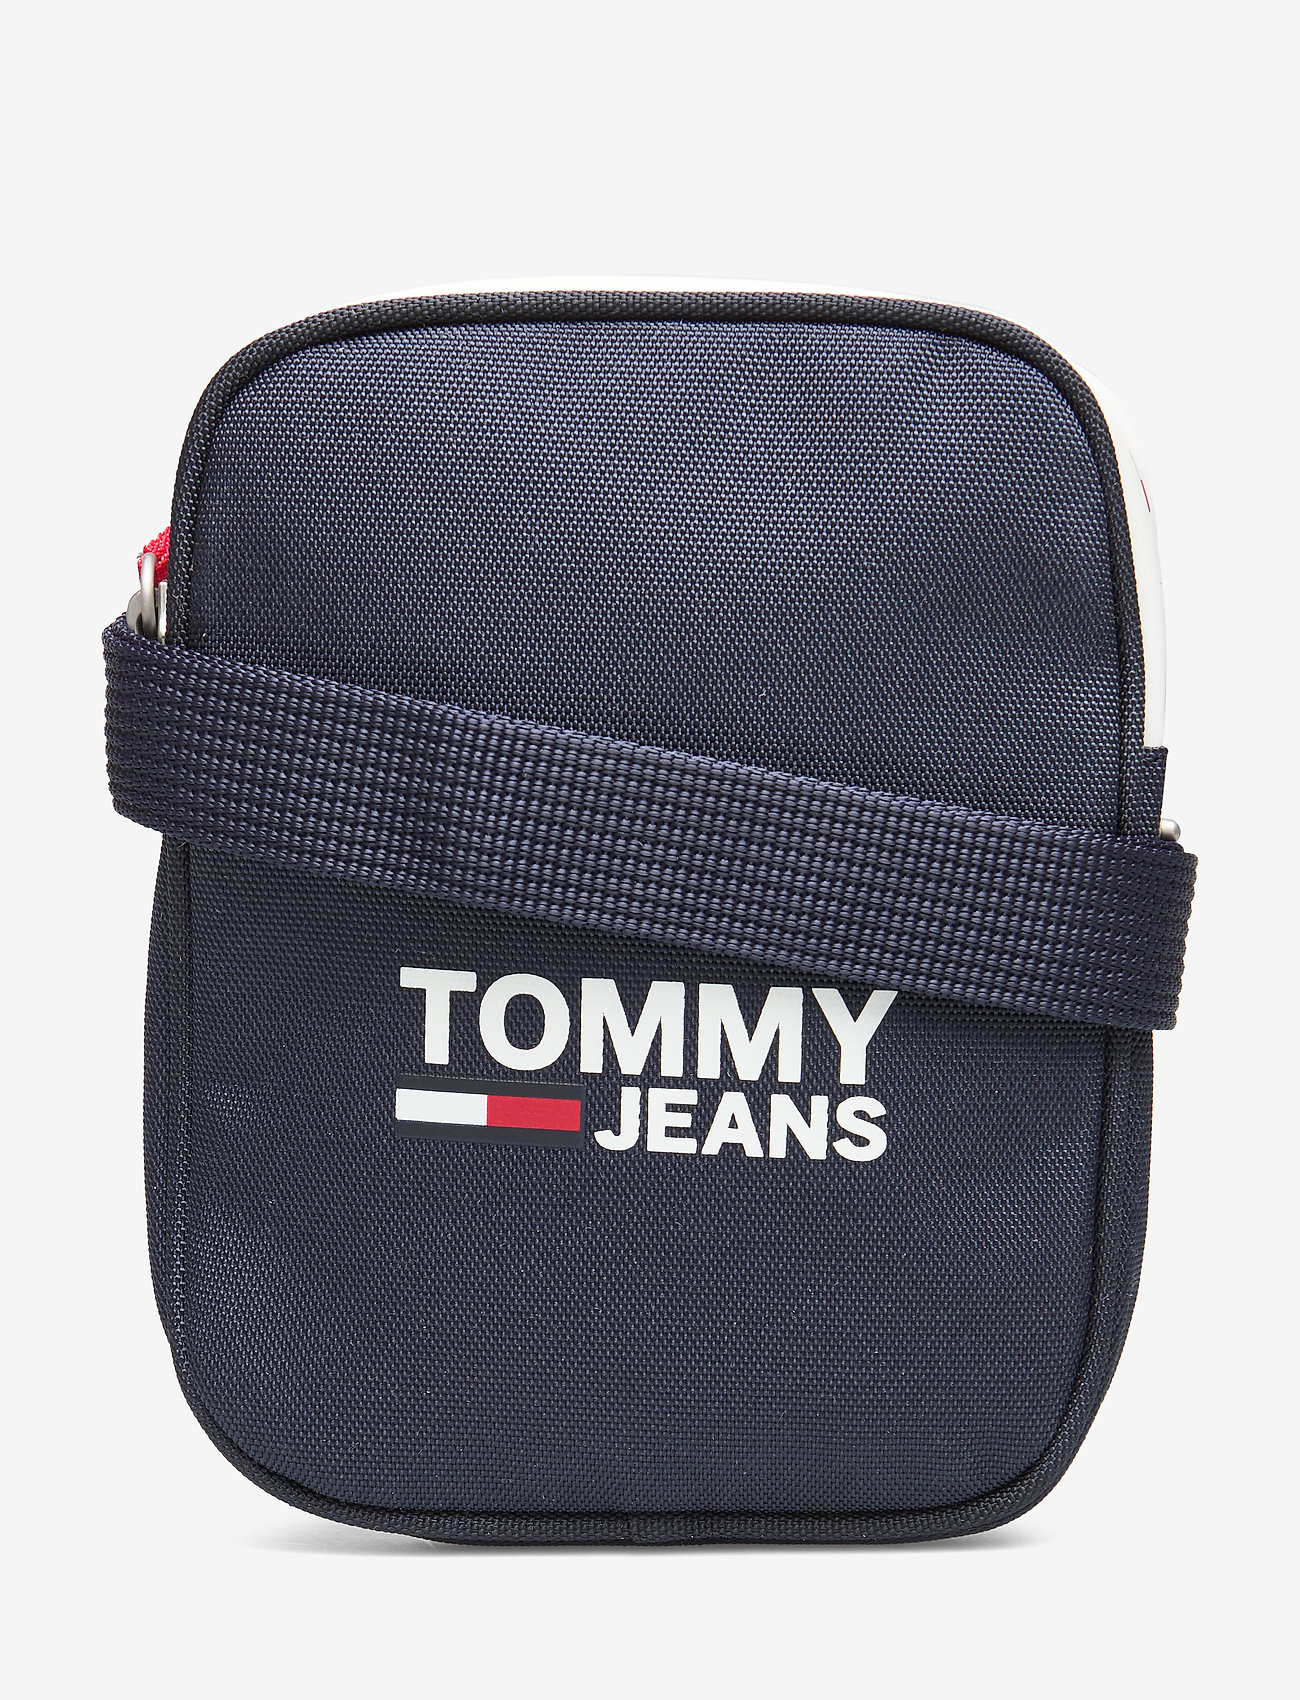 Tommy Hilfiger - TJW COOL CITY COMPAC - shoulder bags - black iris - 0